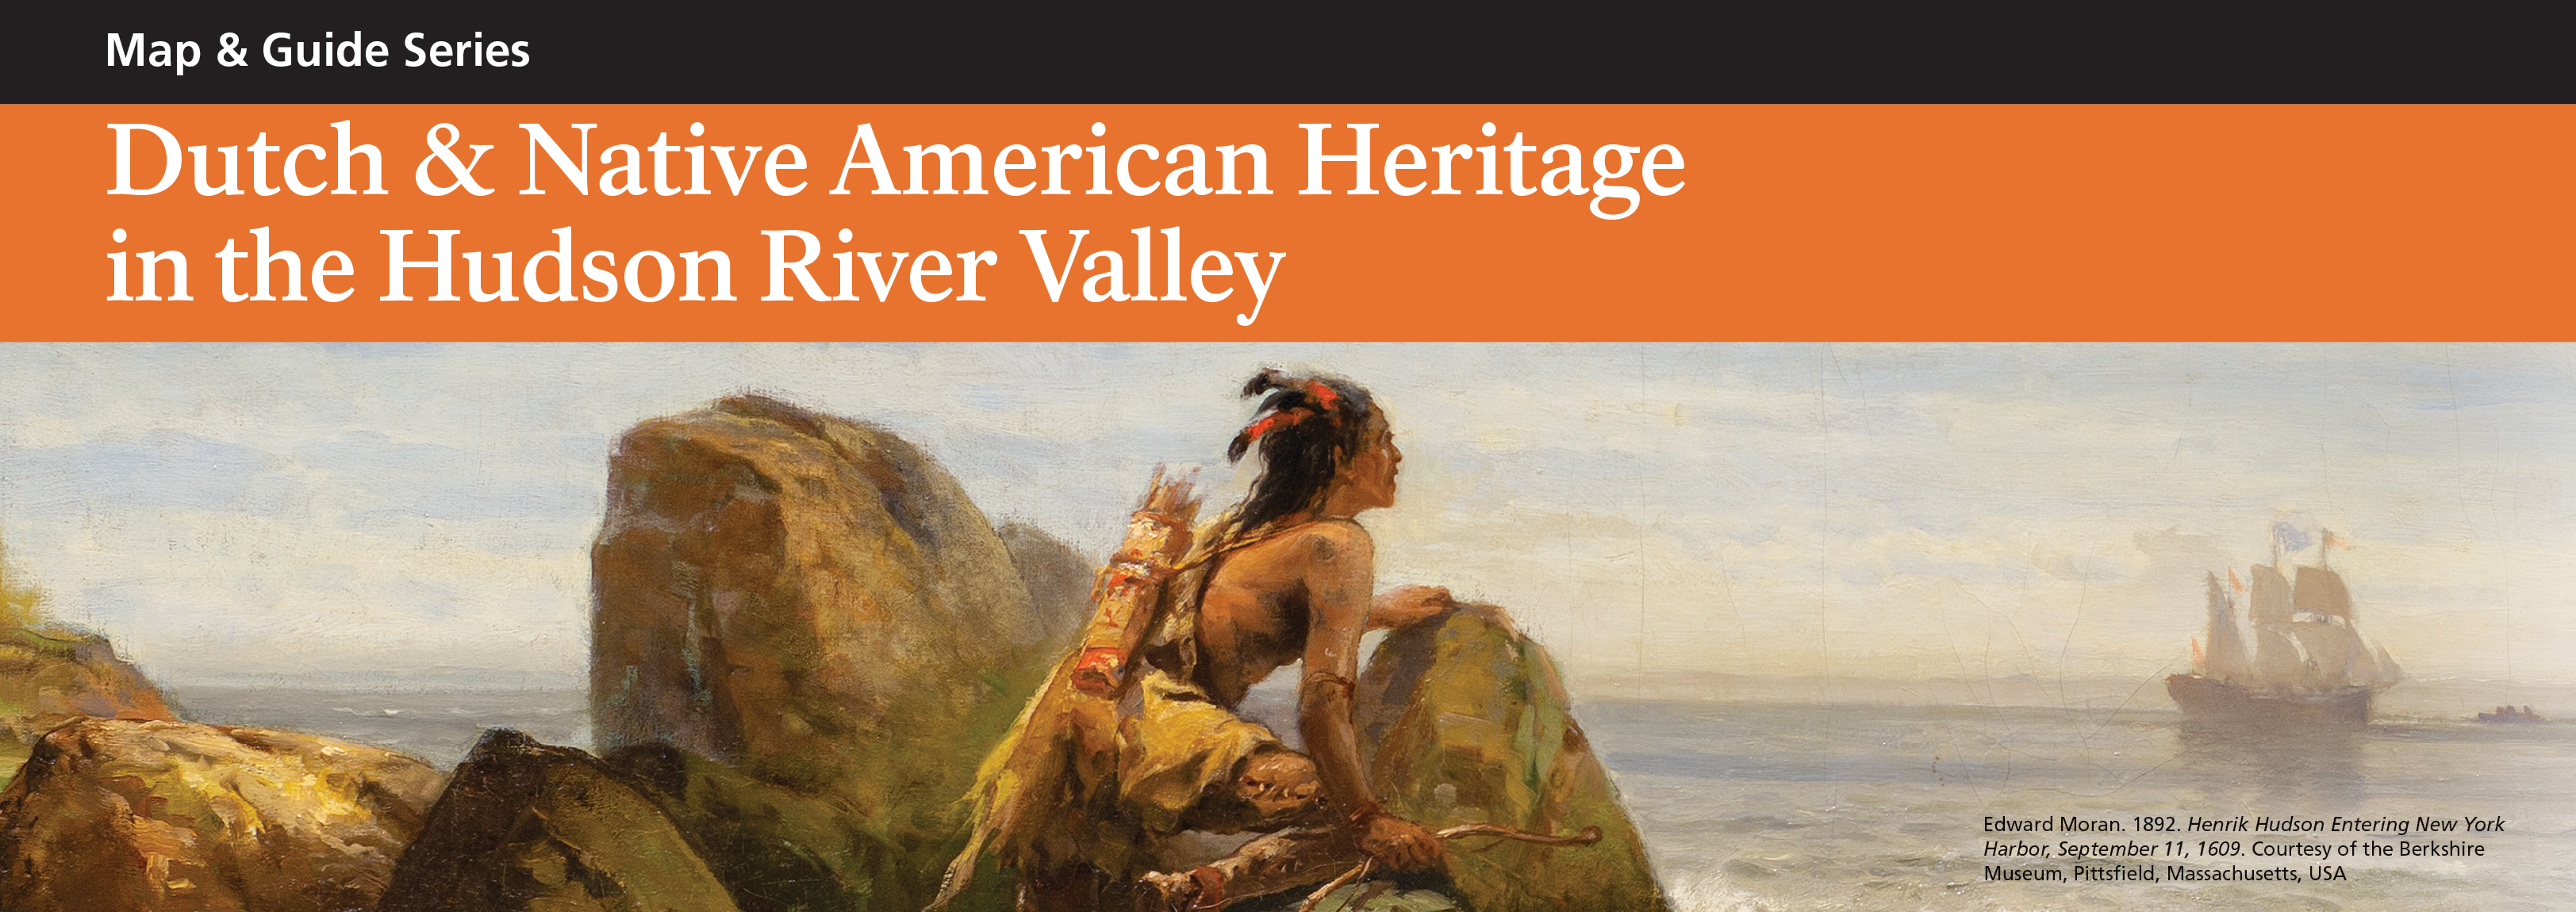 Dutch and Native American Heritage in the Hudson River Valley